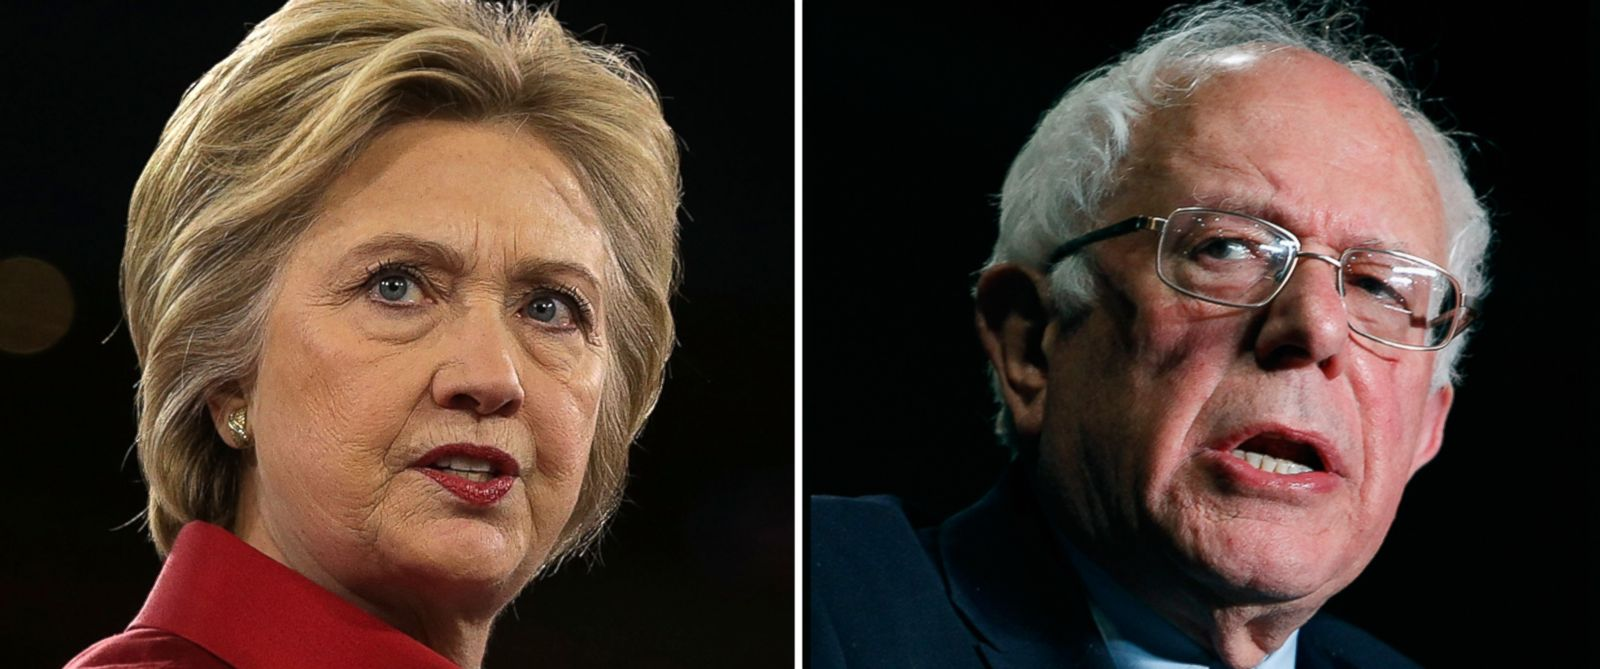 5 Things to Watch for at Tonight's Democratic Debate in Brooklyn